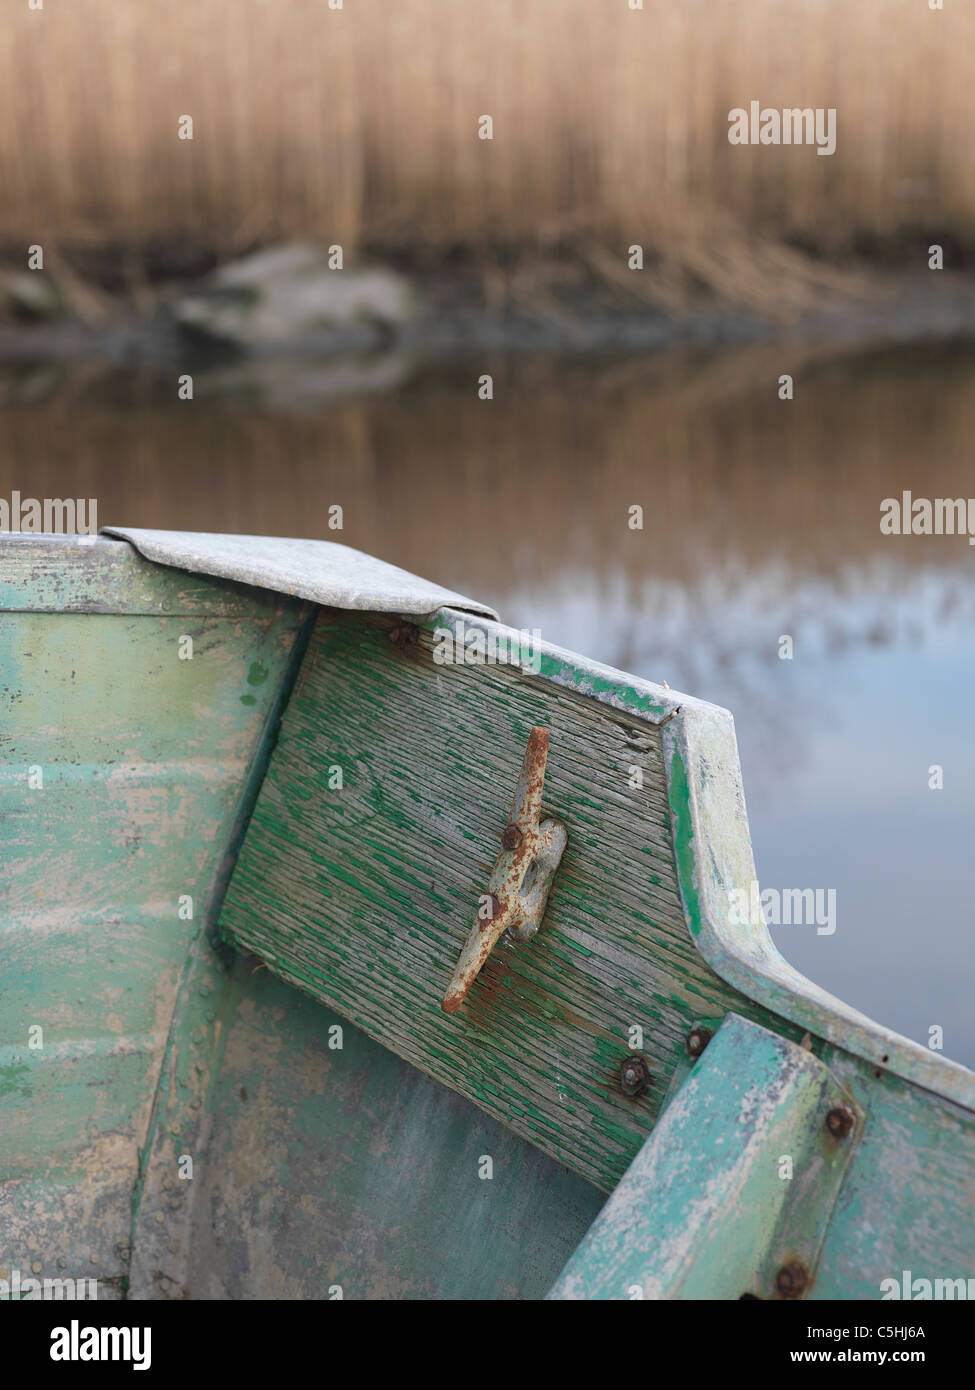 old, patina, flaking, paint, green, blue, rivets, boat, rowing, aluminum, edge, rear, rust, age, color, edge, rear, - Stock Image